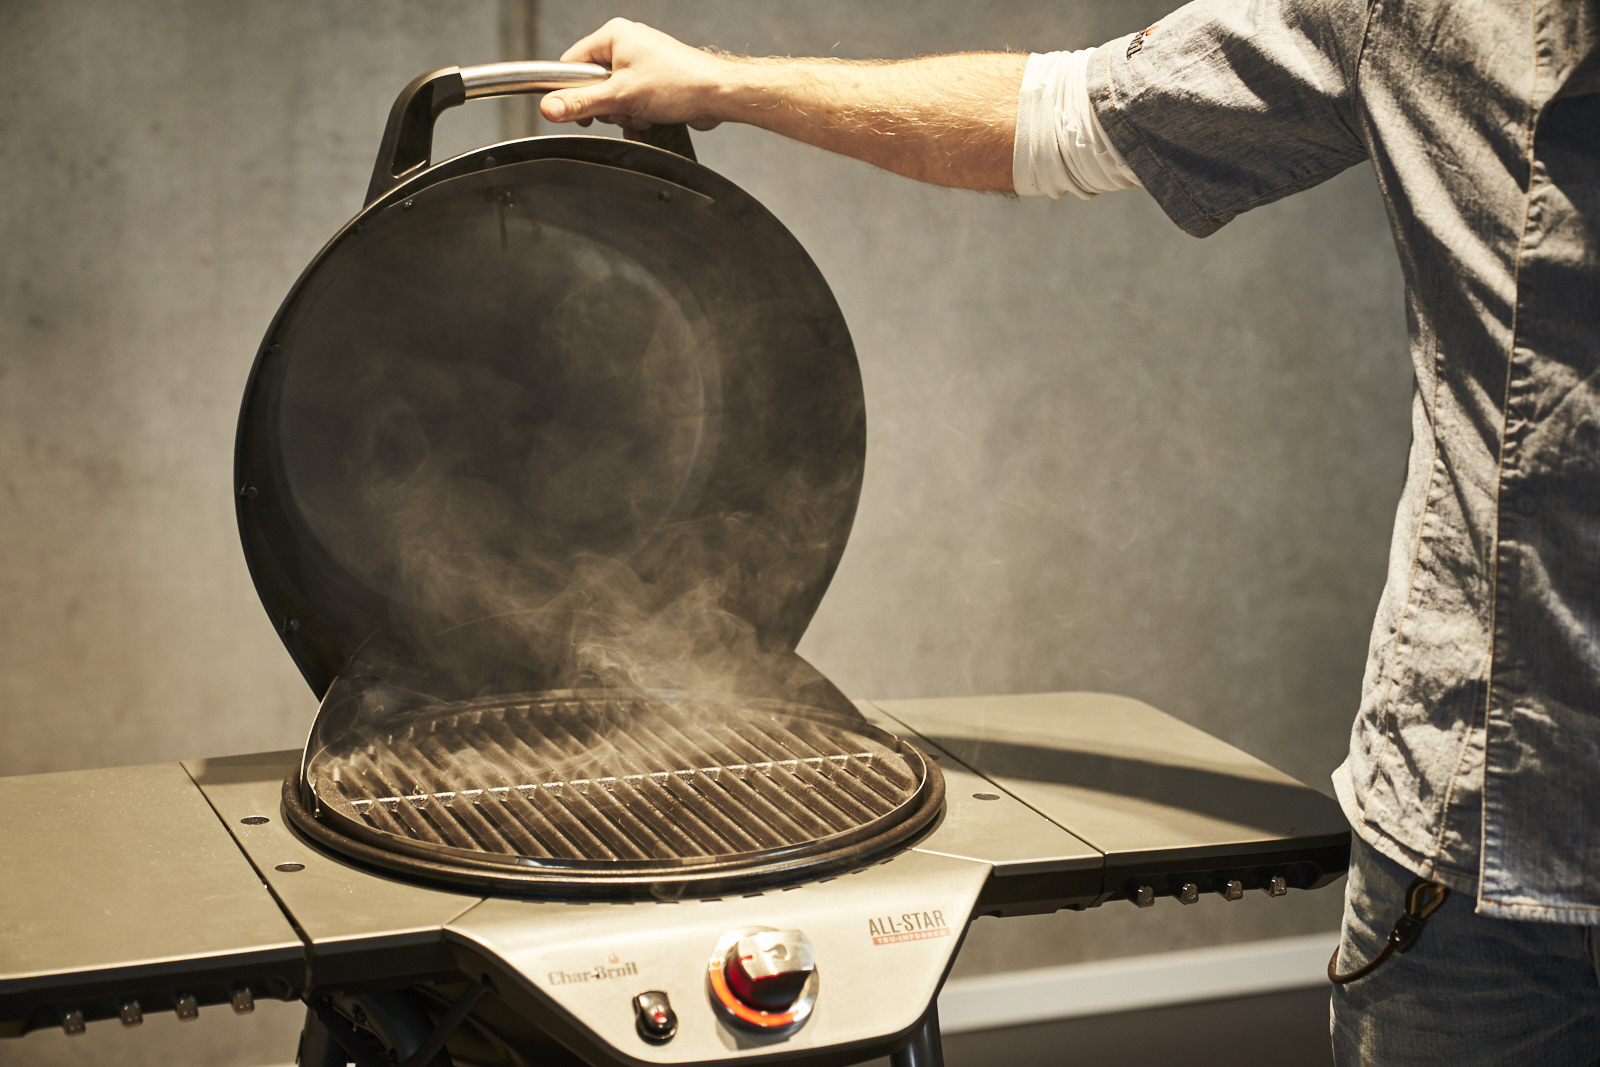 How do I prepare my new gas BBQ for first use?